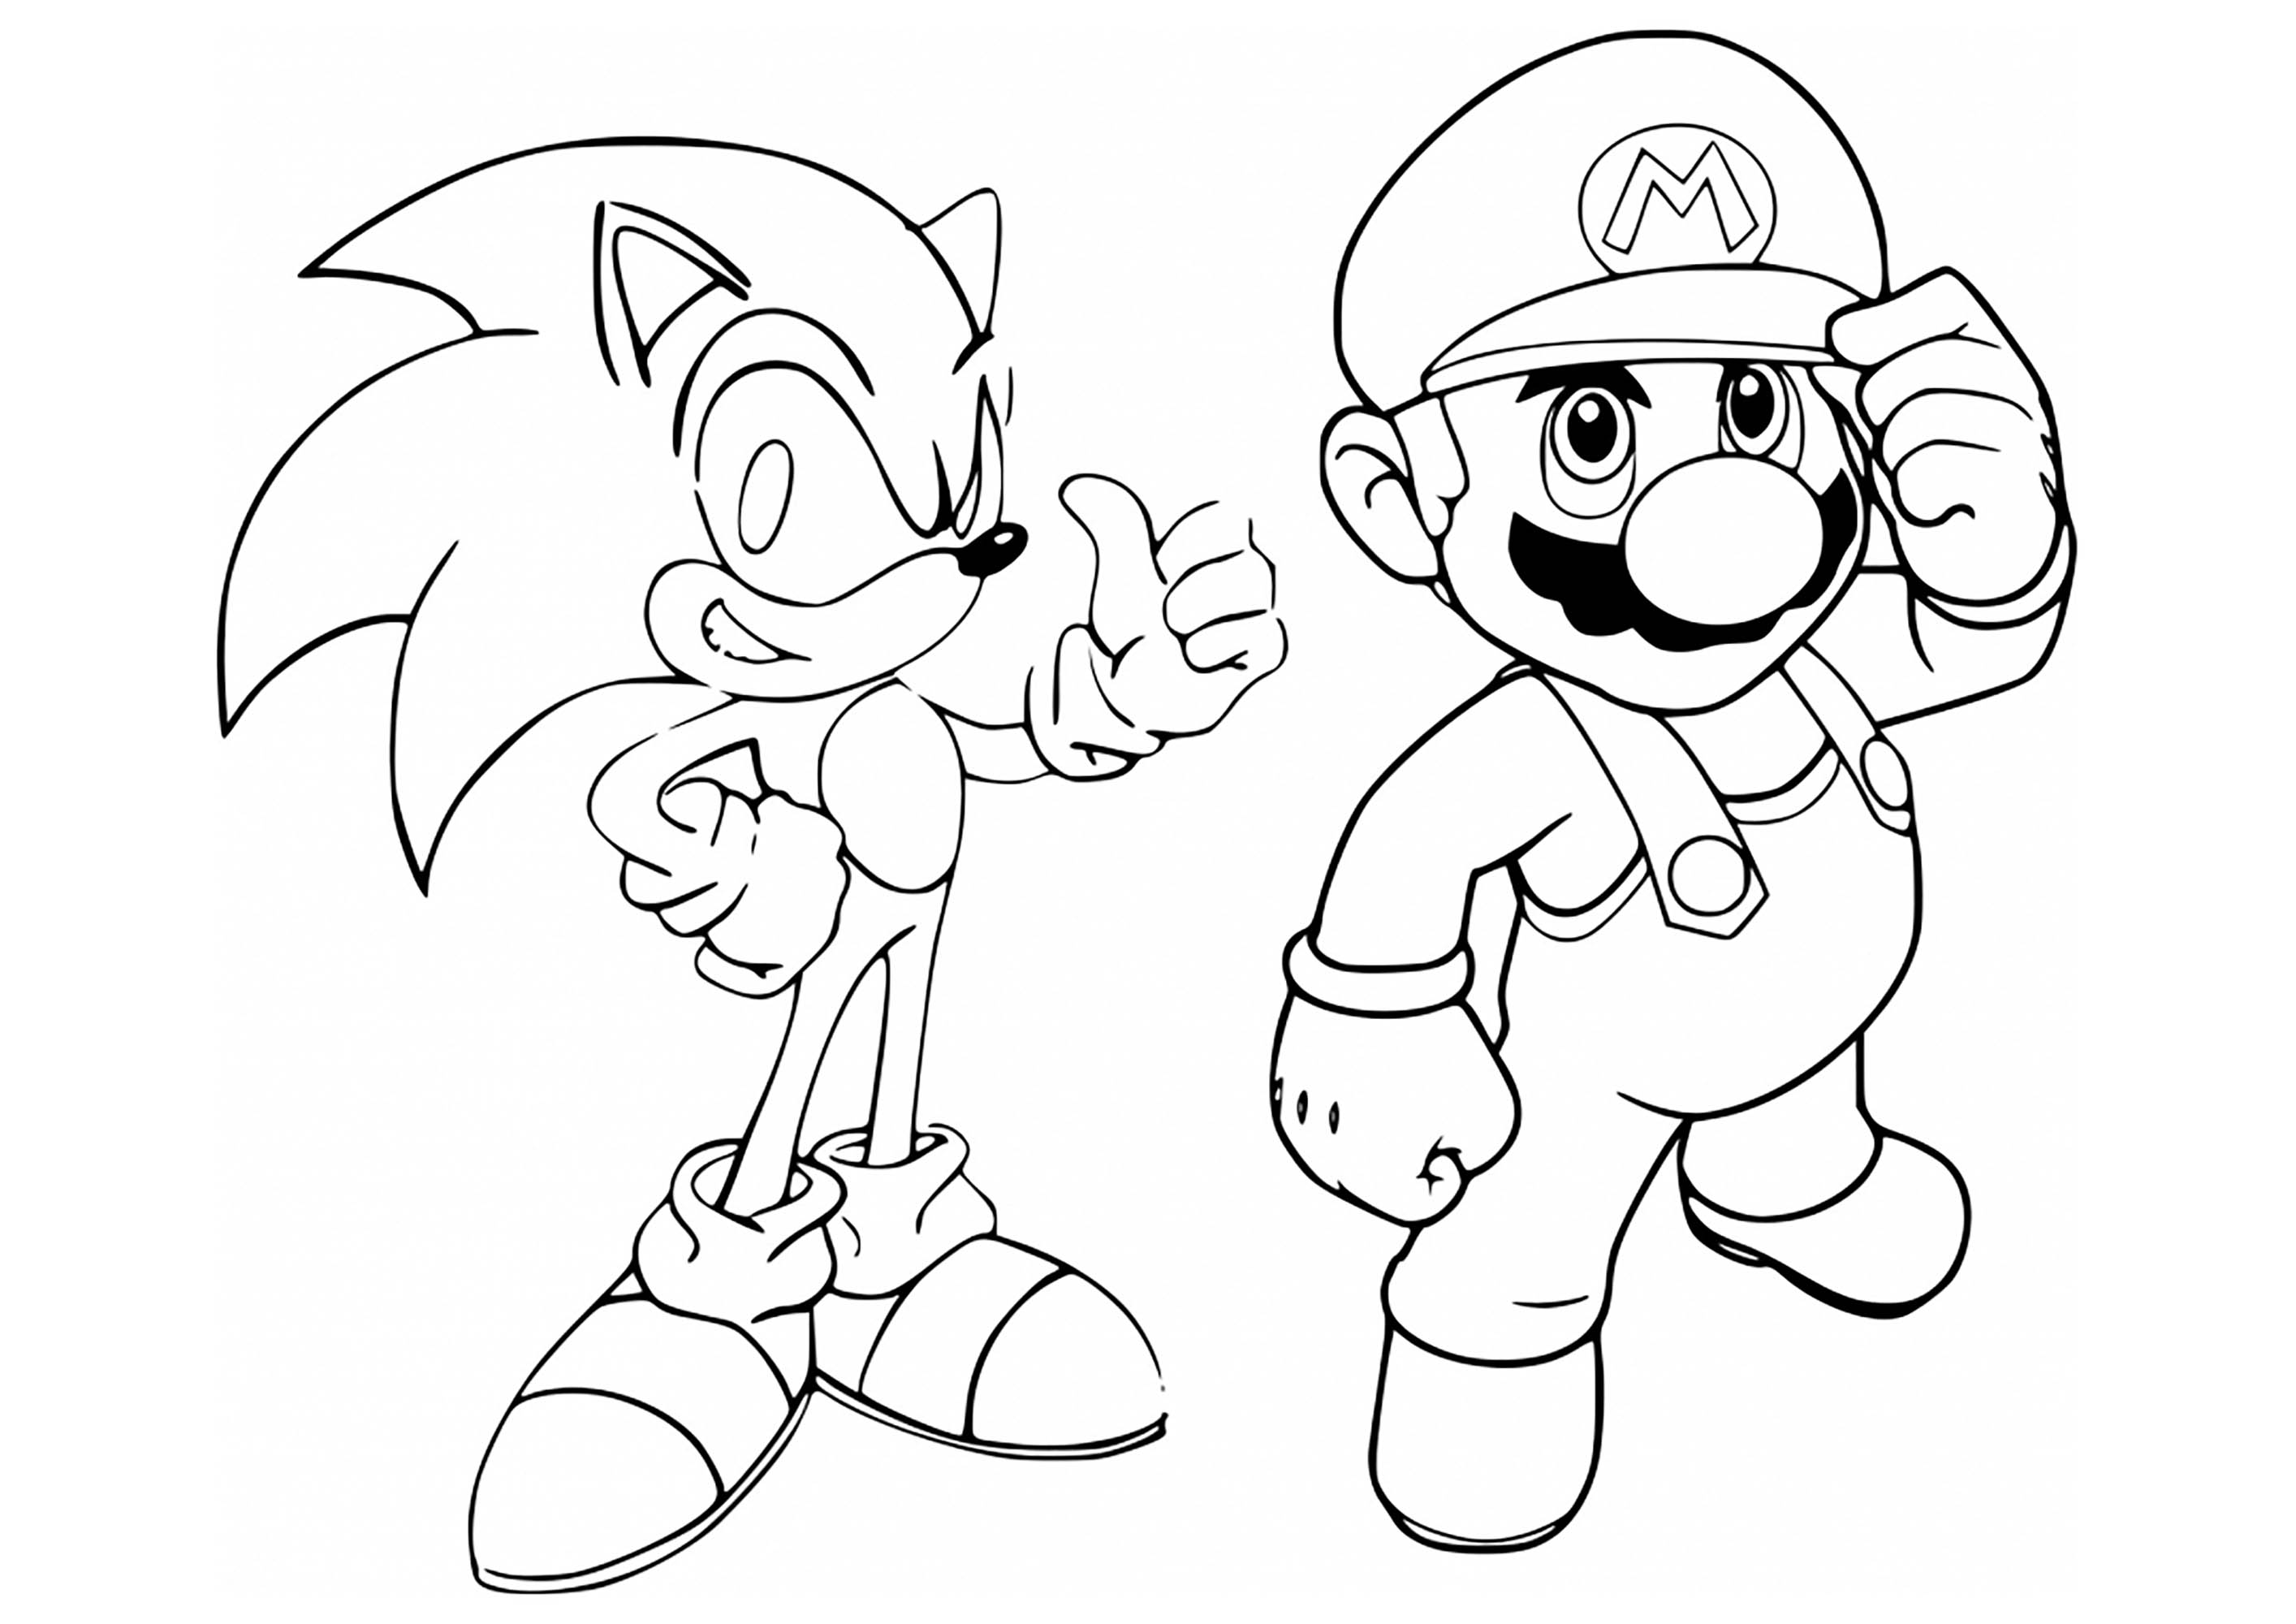 mario picture to color mario coloring pages themes best apps for kids to color picture mario